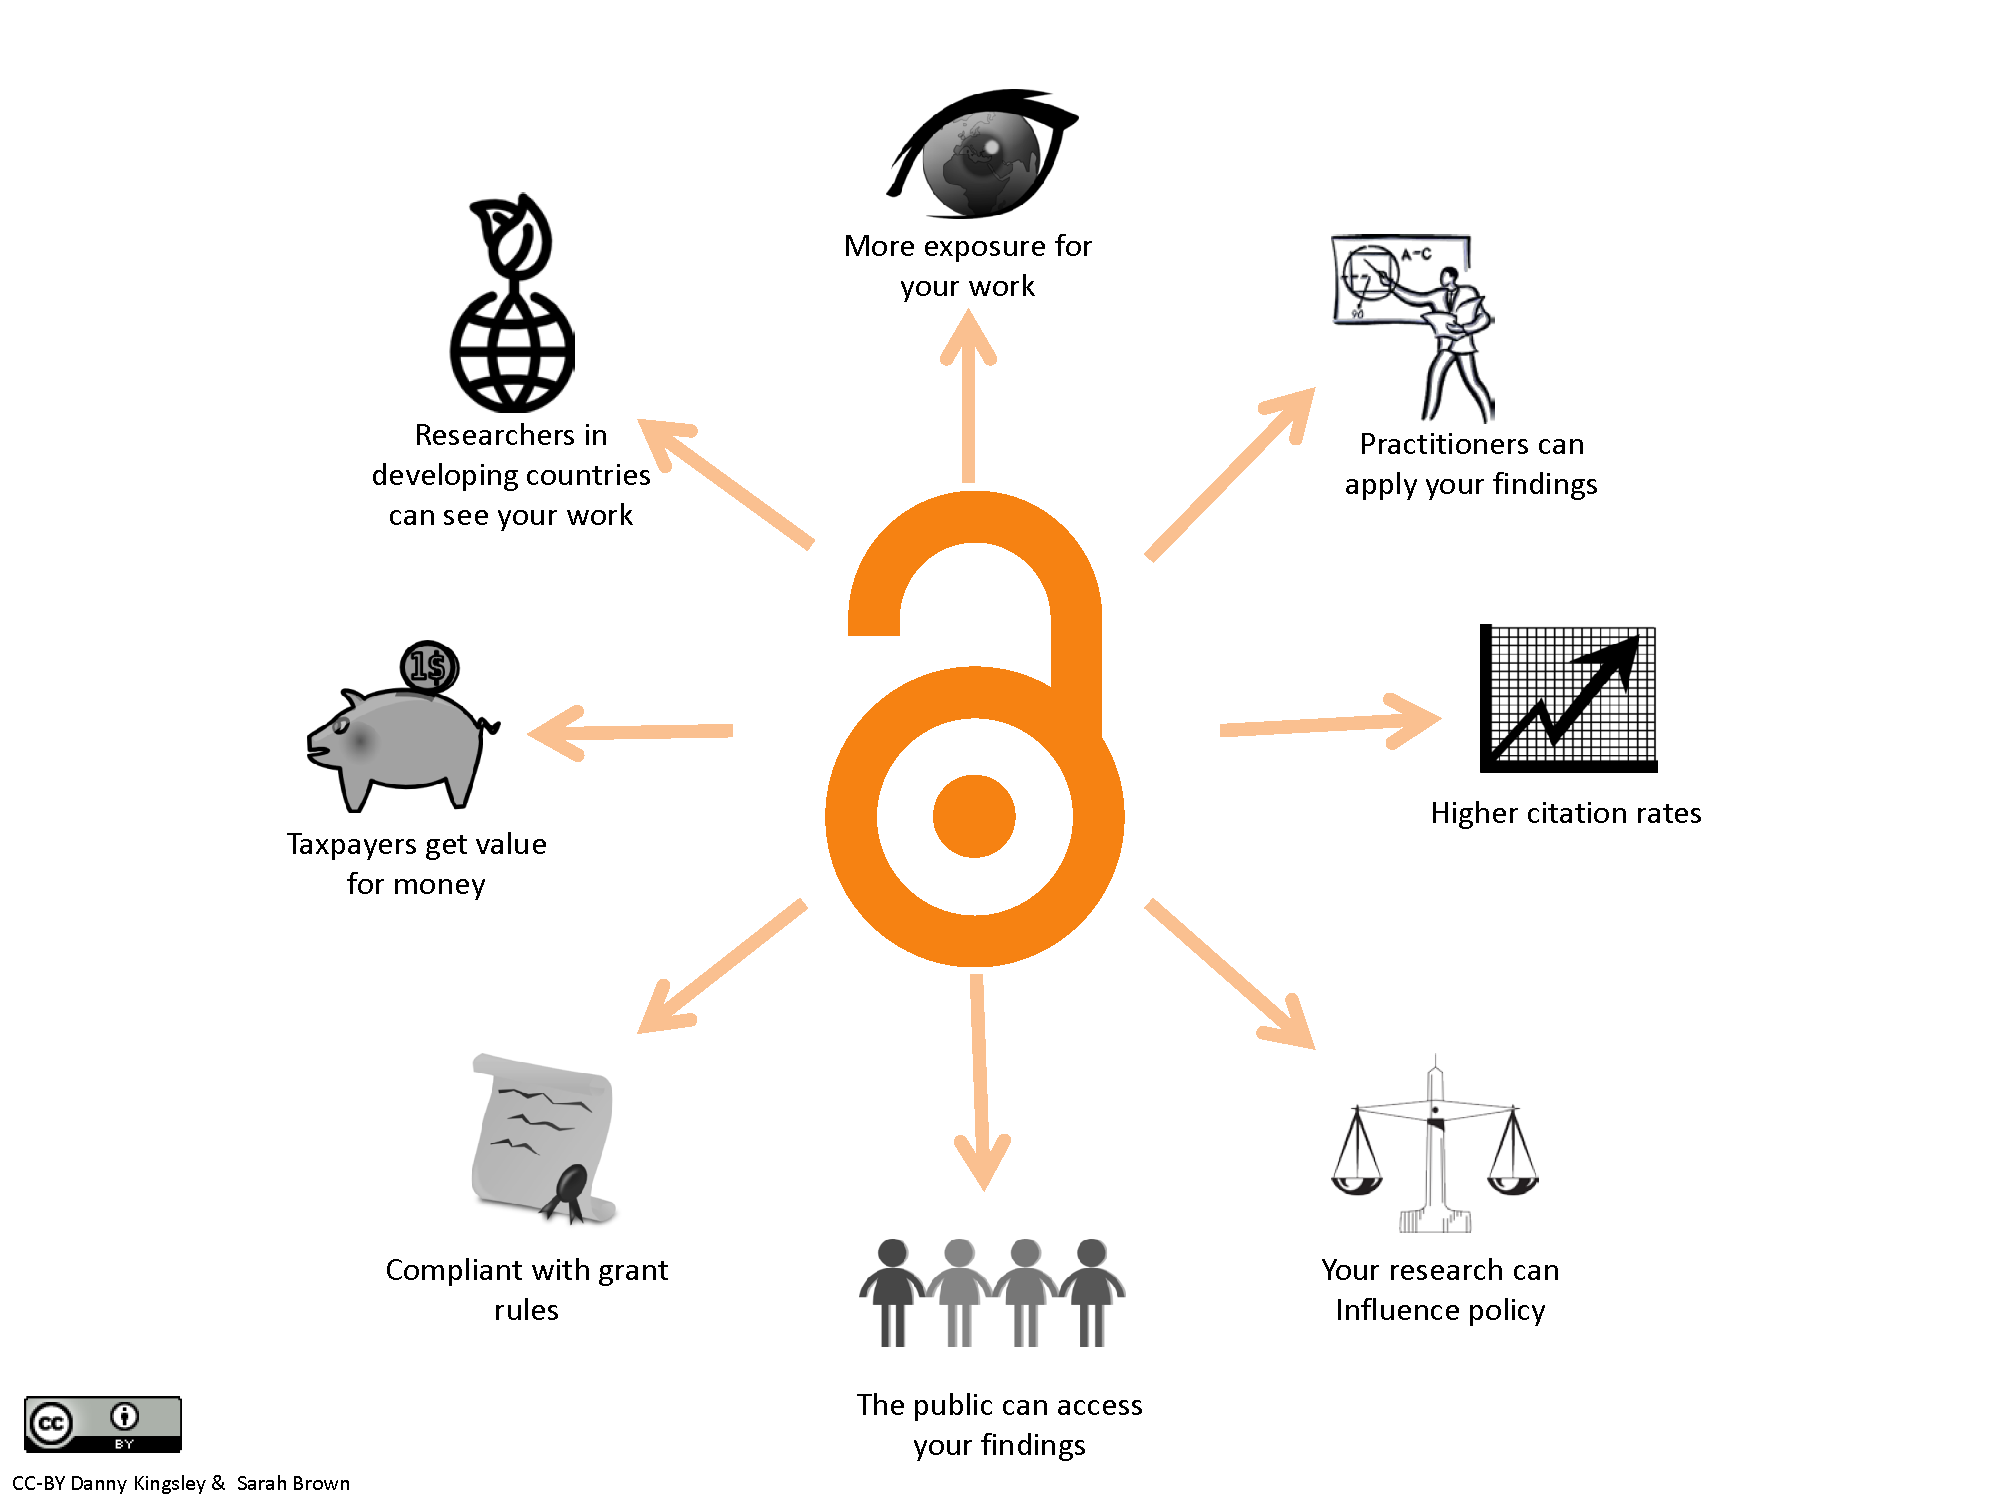 The benefits of Open Access. Picture: Danny Kingsley & Sarah Brown